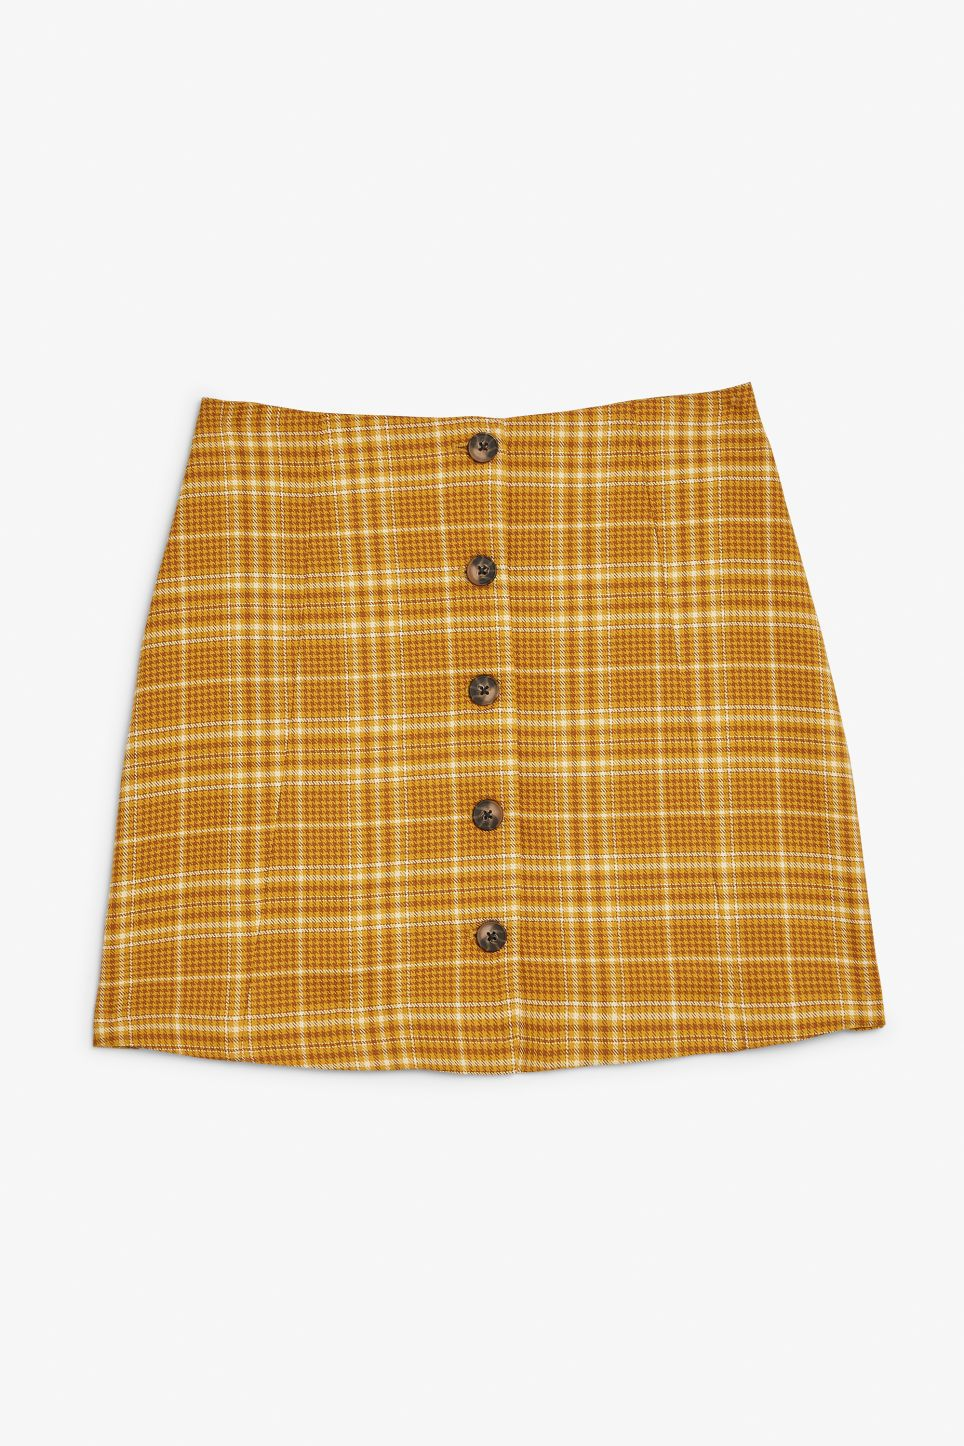 0887232967a6 Hot Topic yellow plaid skirt Yellow plaid skirt Perfect for Cher Horowitz  costume Never worn! Tags still on Hot Topic Skirts Mini | My Posh Picks |  Yellow ...